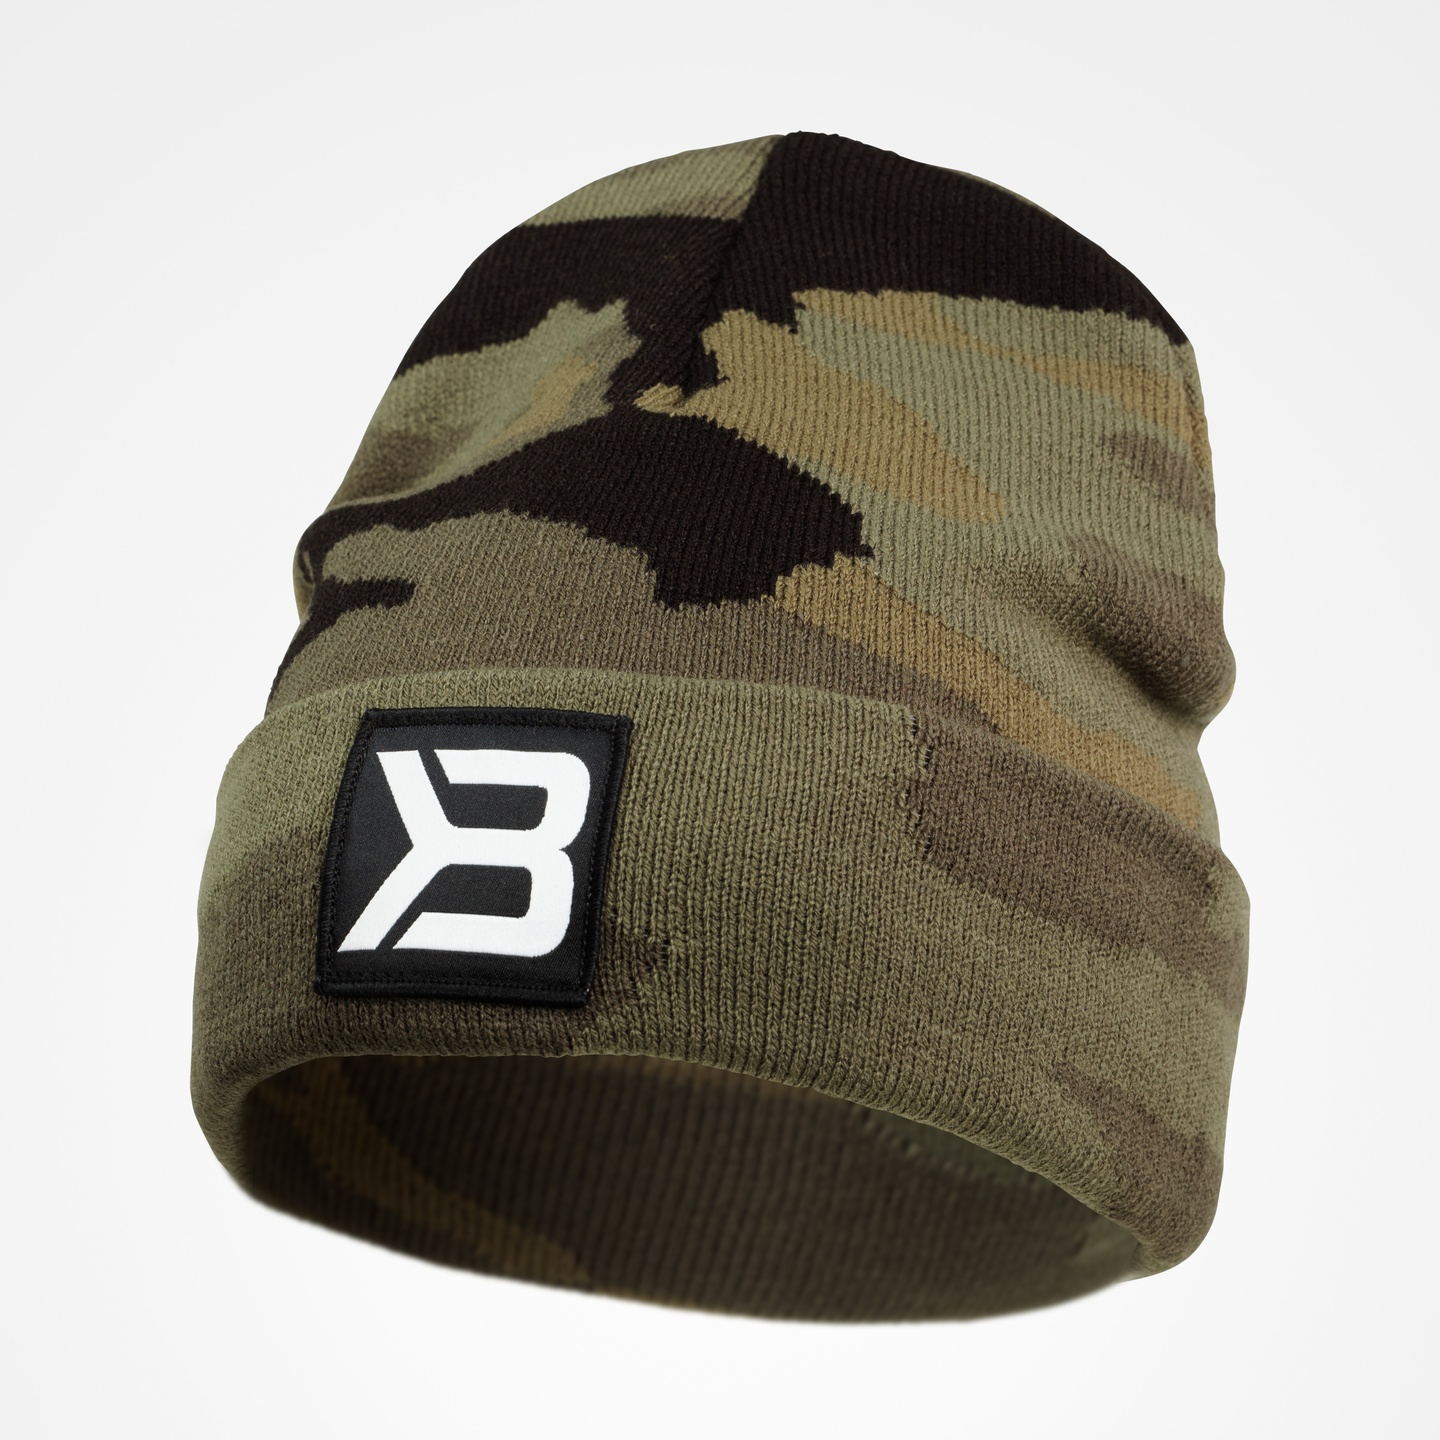 5e3a11d13b370 A product image of Tribeca Beanie